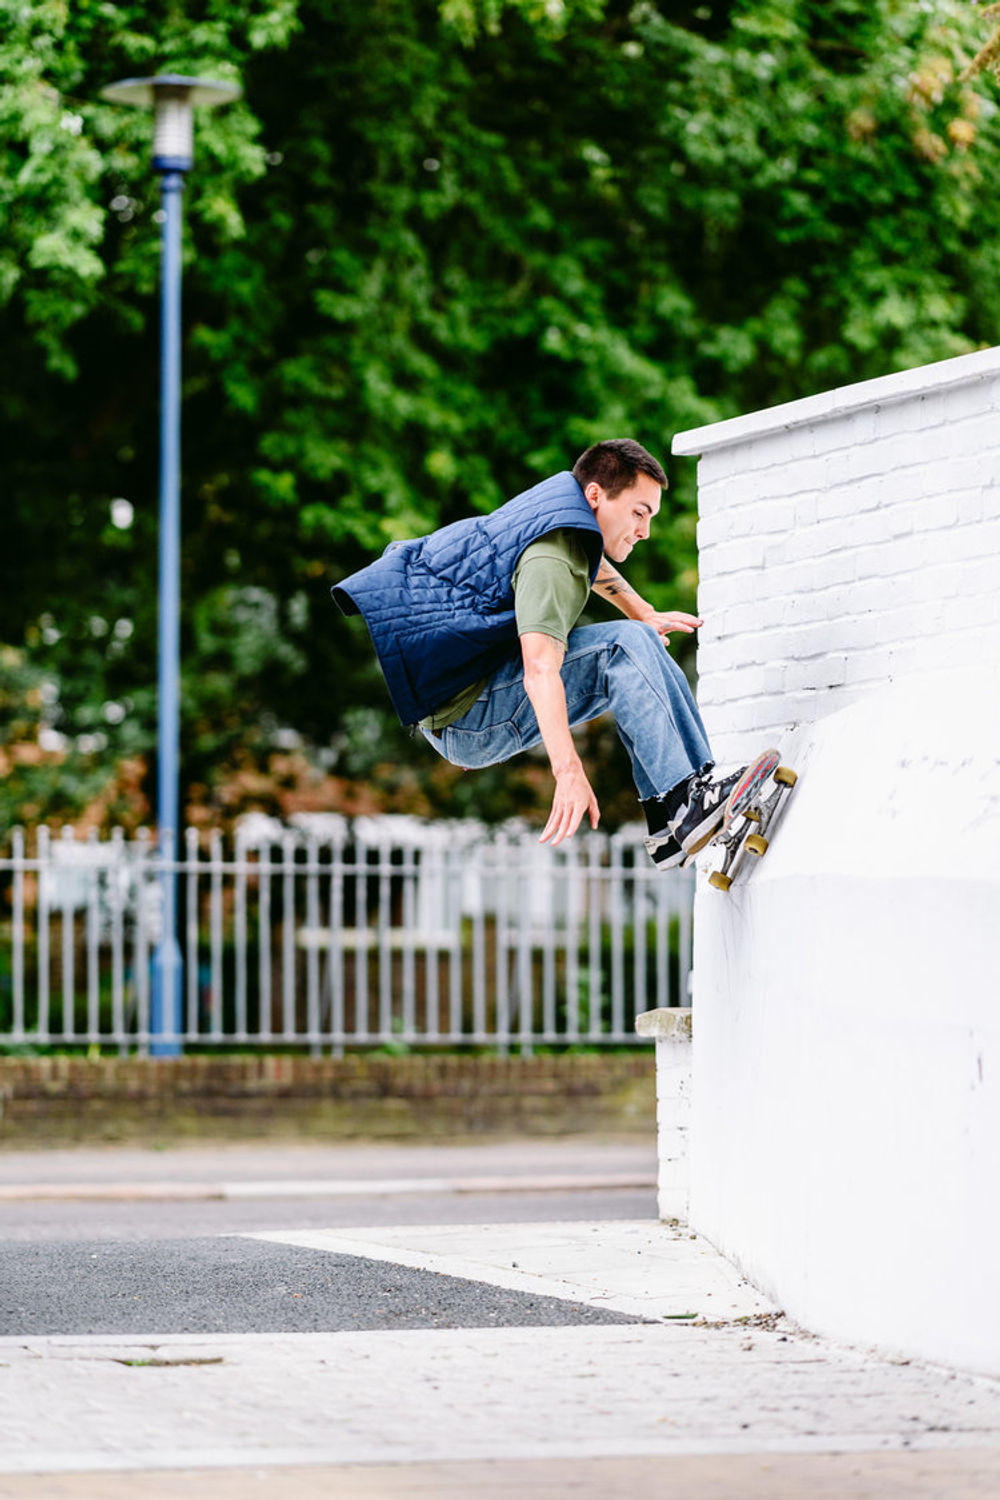 _ihc2290e-manny-lopez-bump-to-fs-wallride-levis-skateboarding-london-august-2017-photographer-maksim-kalanep